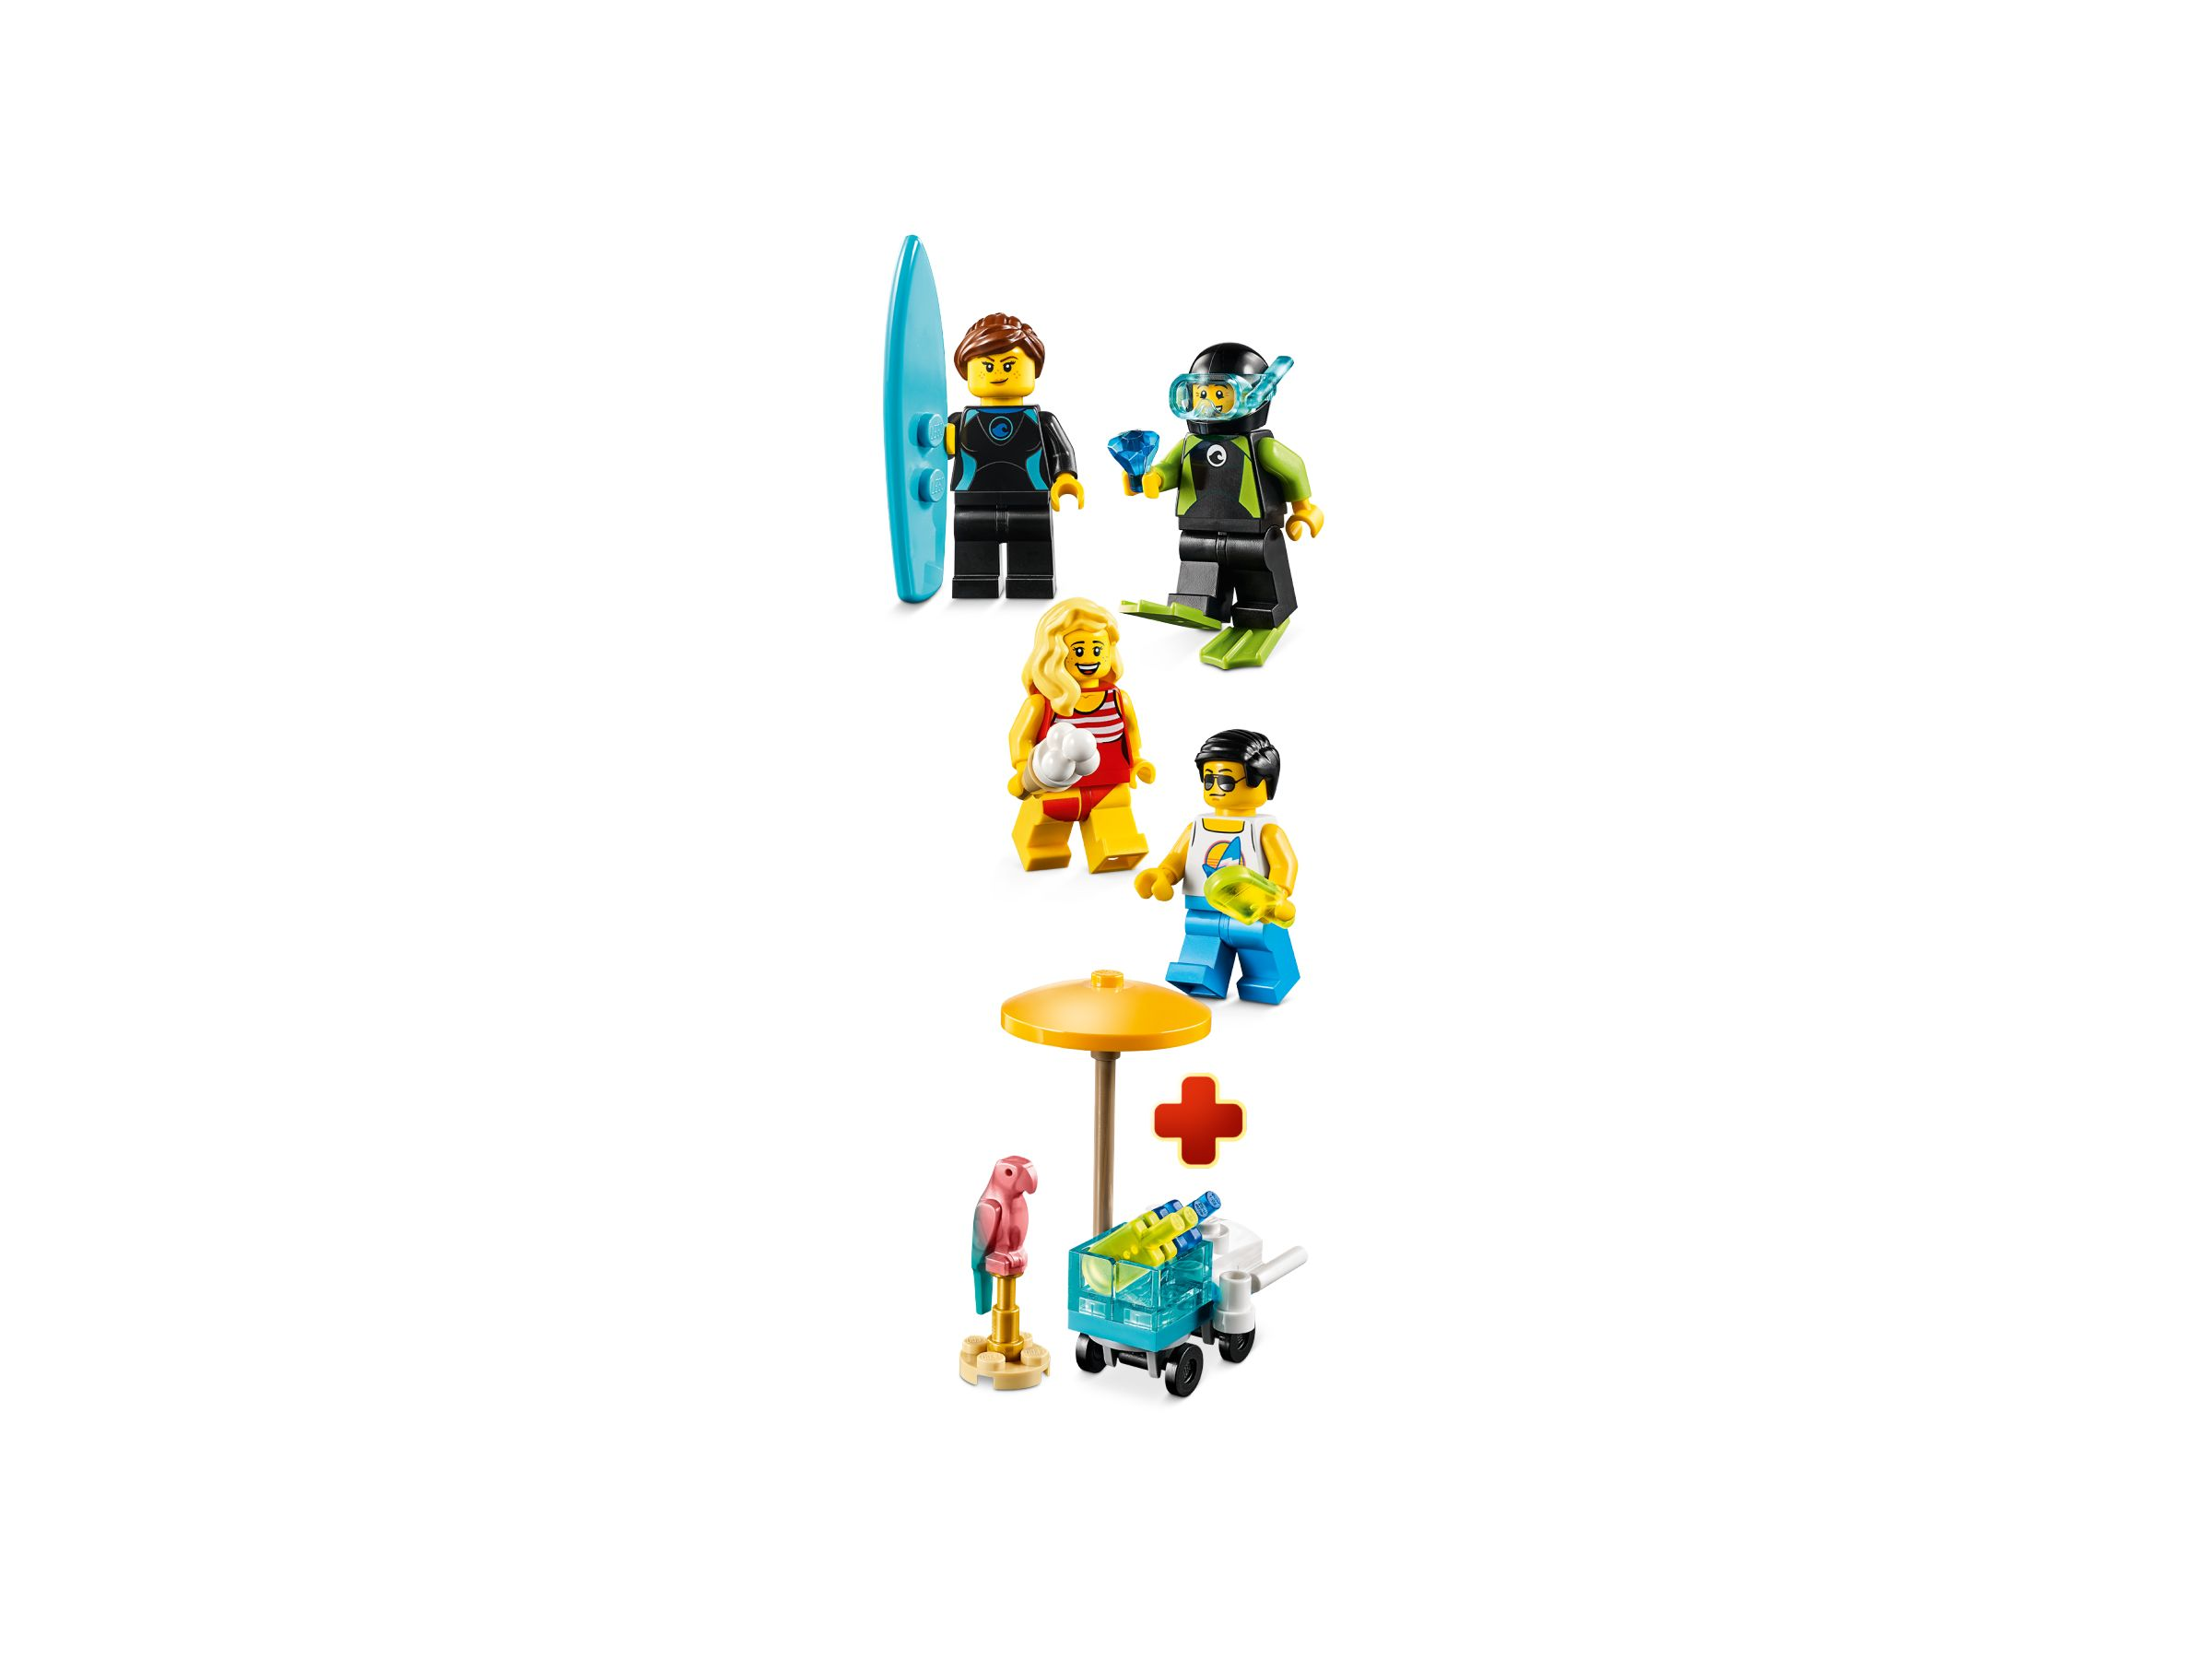 LEGO Miscellaneous 40344 Minifiguren-Set – Sommerparty LEGO_40344_alt1.jpg